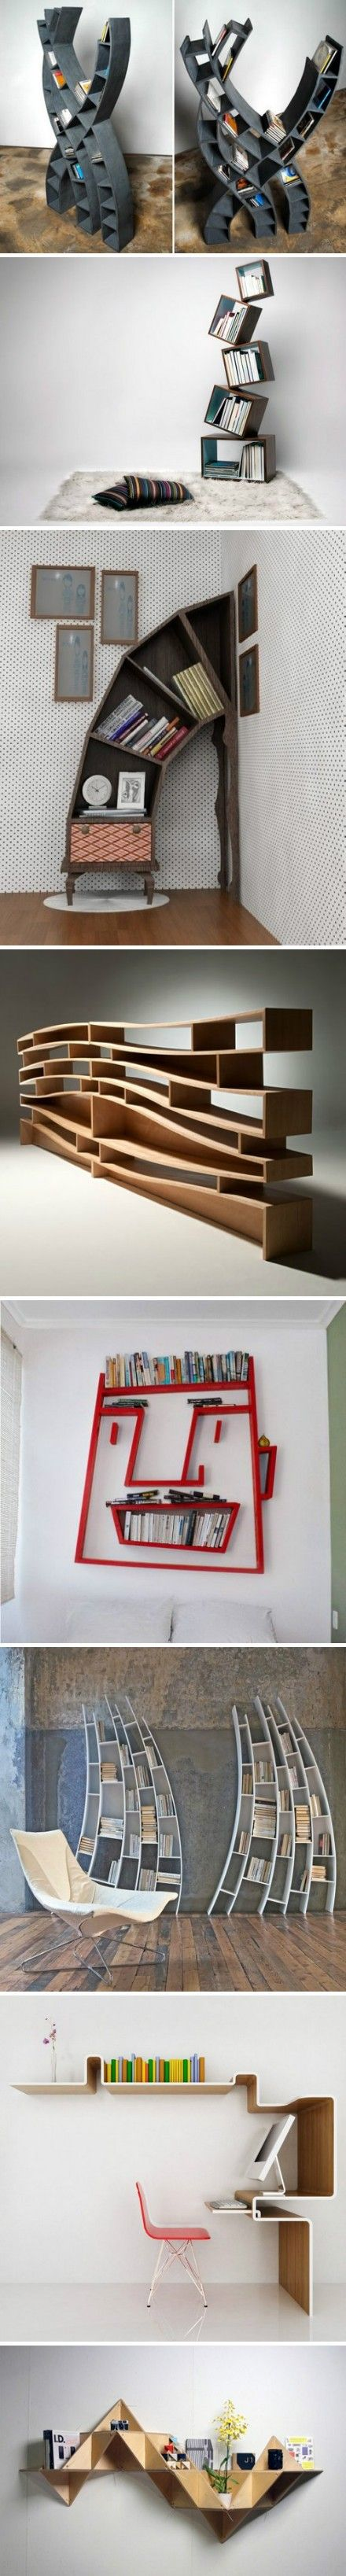 Unique DIY Book Shelves - These would look cool in the library!